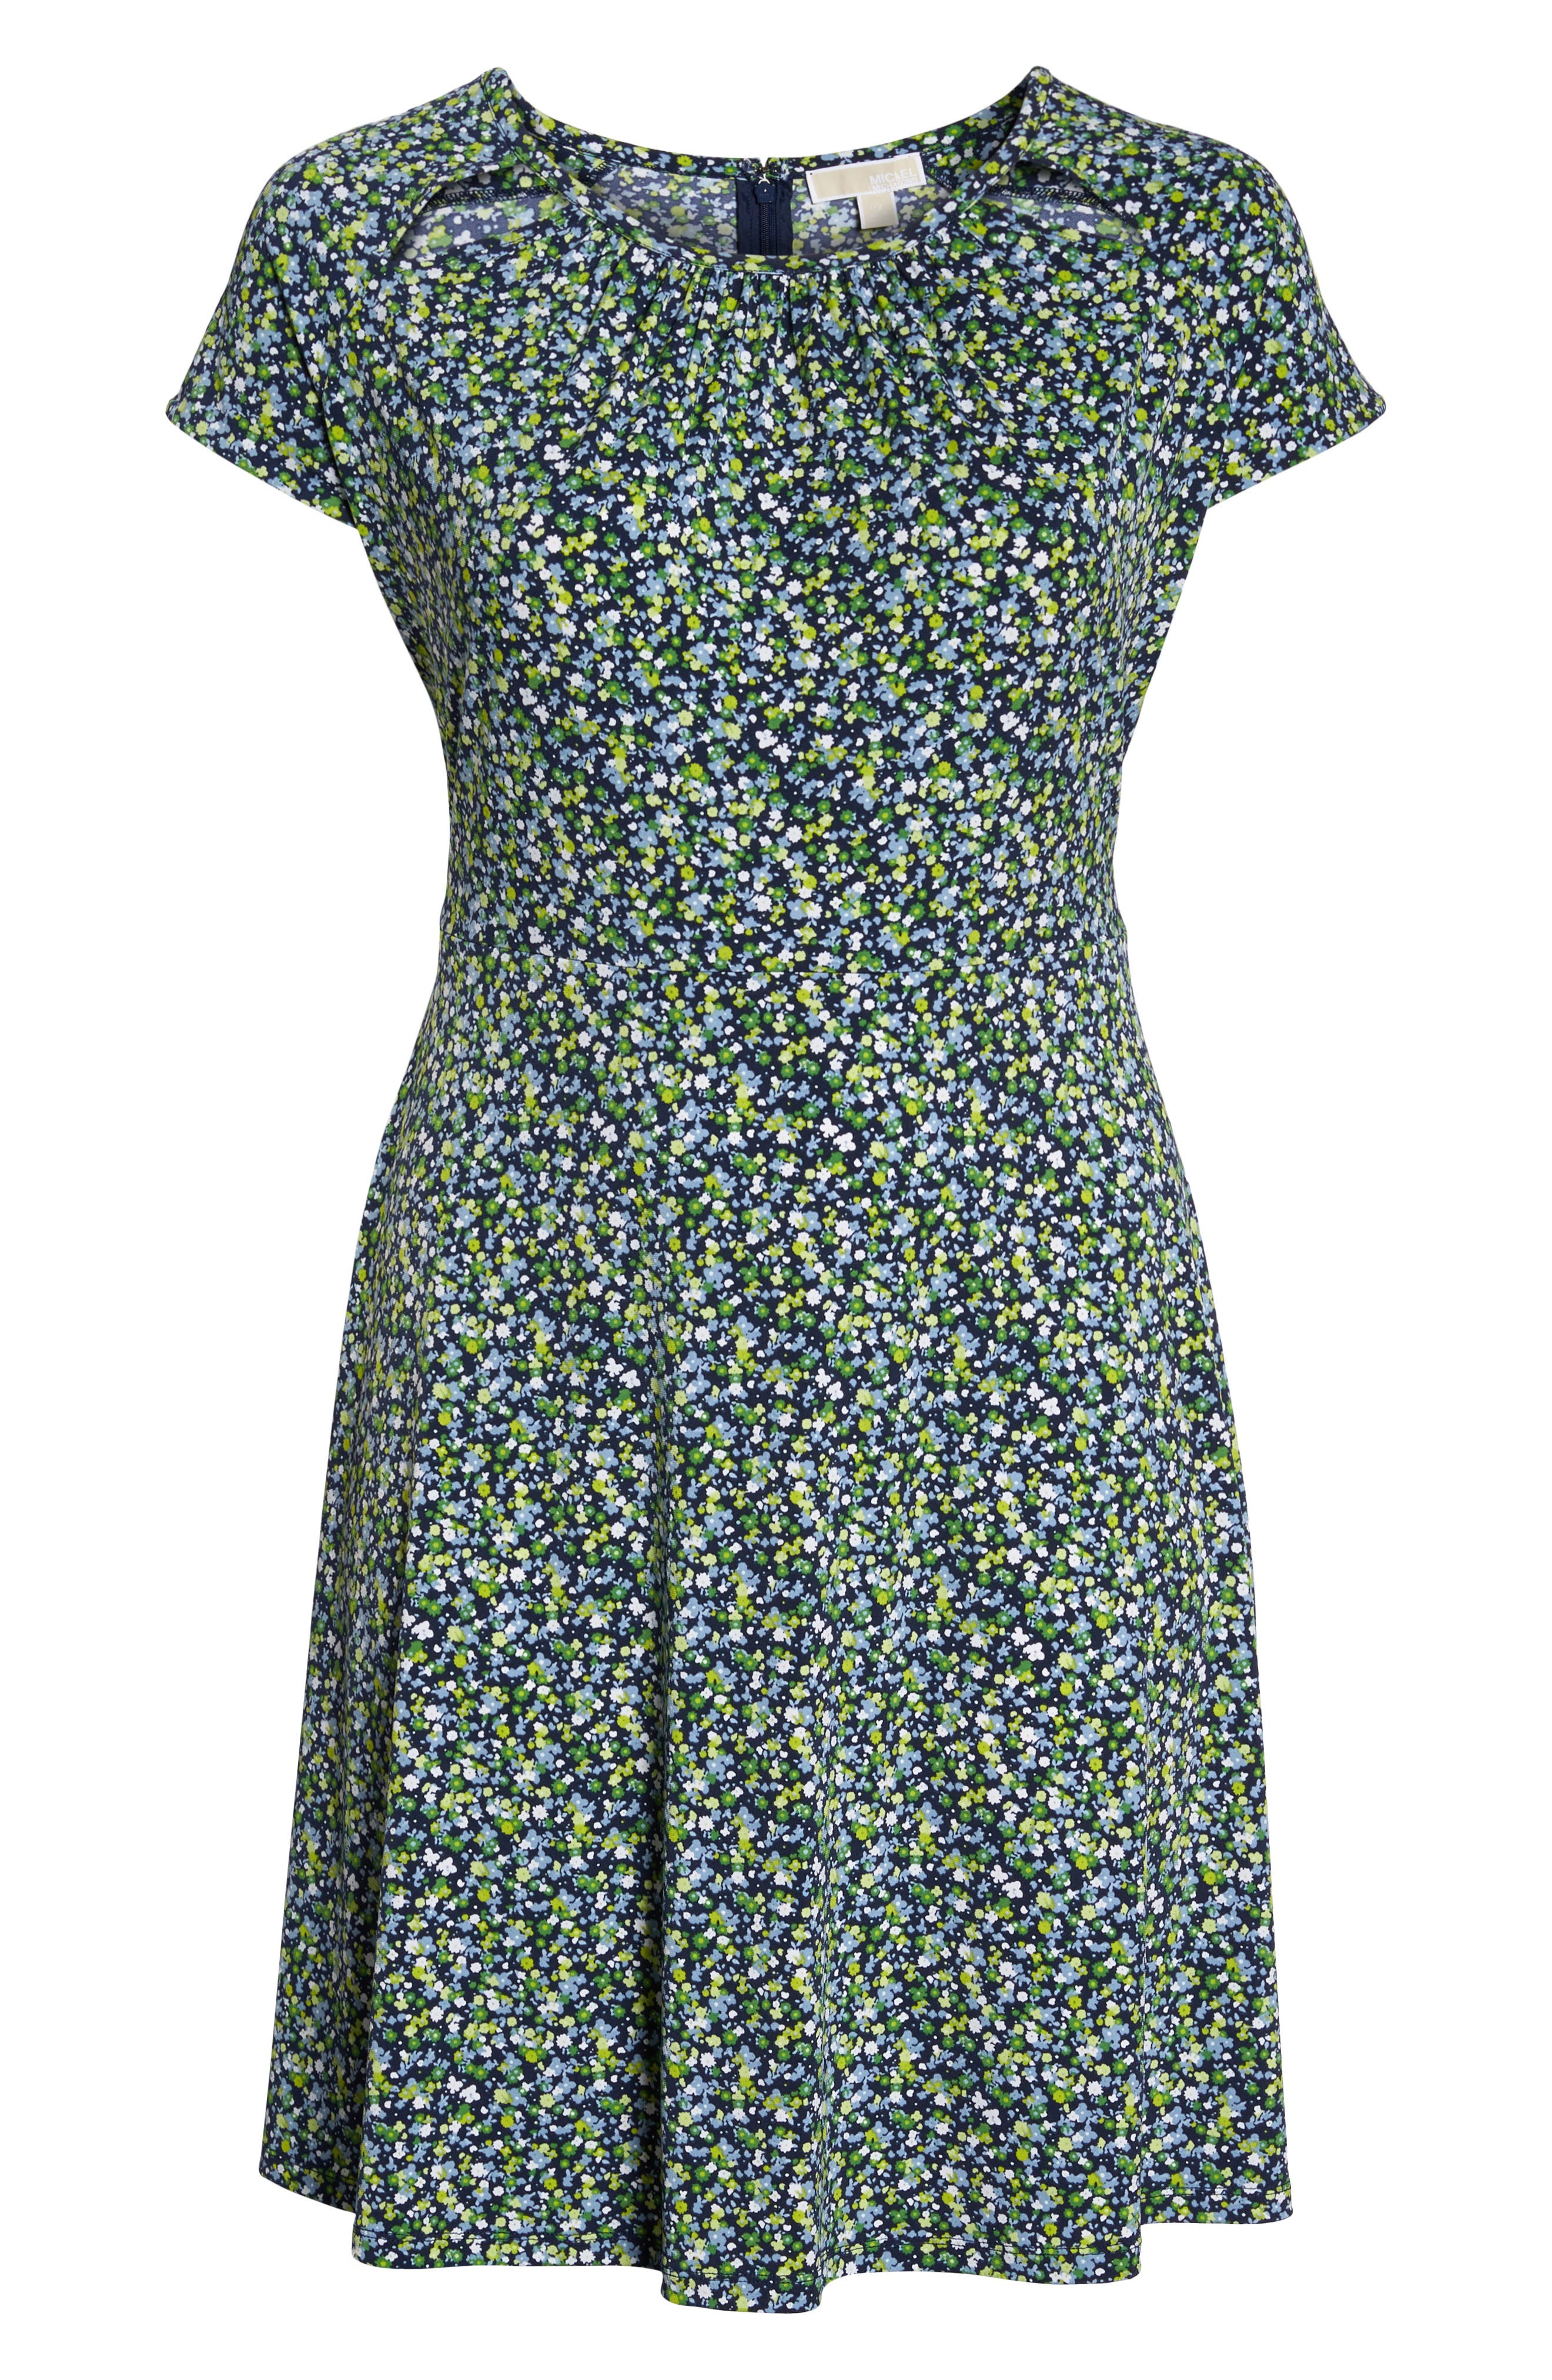 Floral Cutout Jersey Fit & Flare Dress,                             Alternate thumbnail 6, color,                             True Navy/ Green Apple Mu